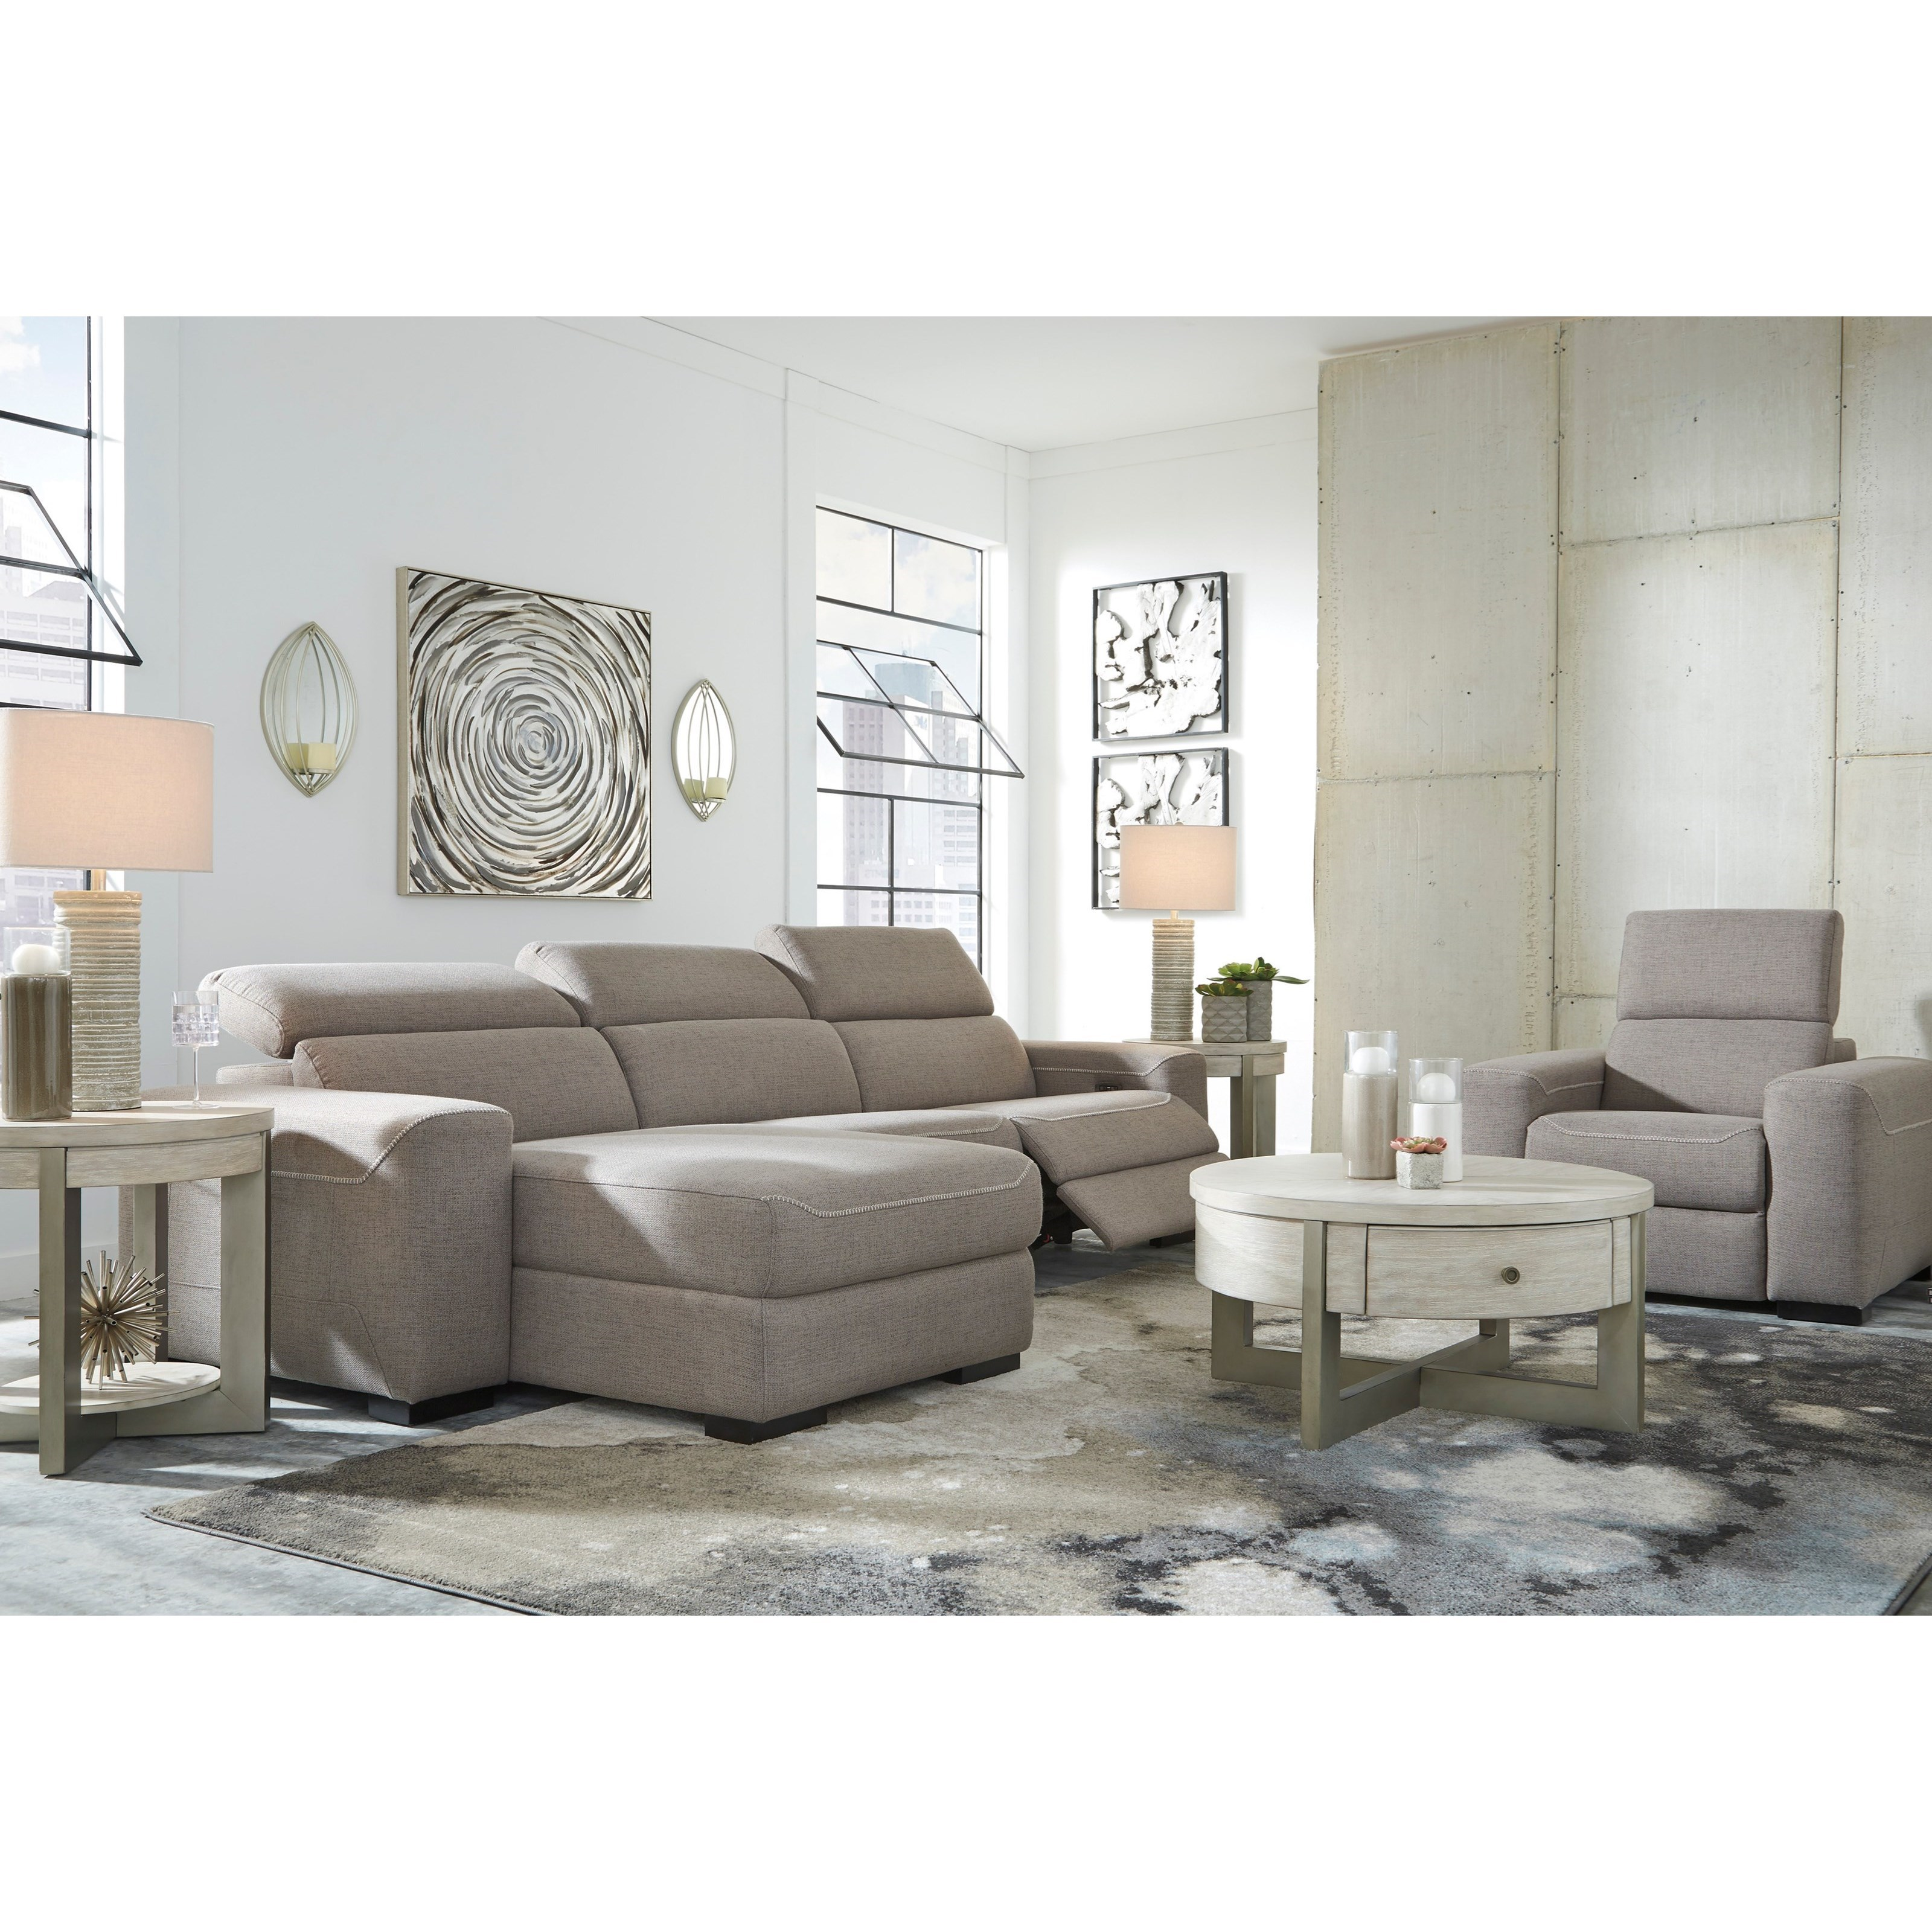 Mabton Power Reclining Living Room Group by Signature Design by Ashley at Sparks HomeStore